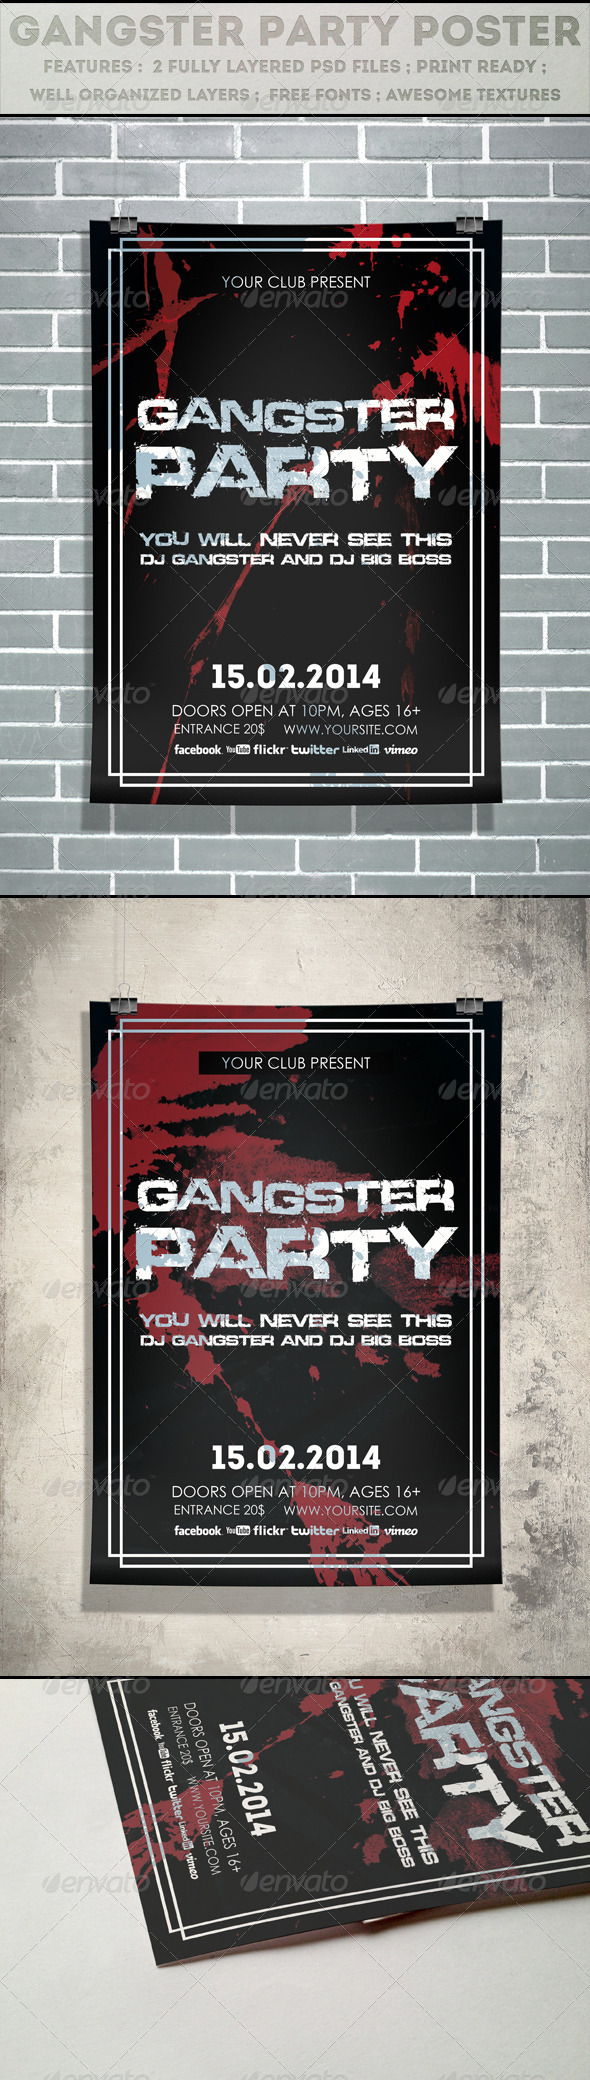 GraphicRiver Gangster Party Poster 6715830